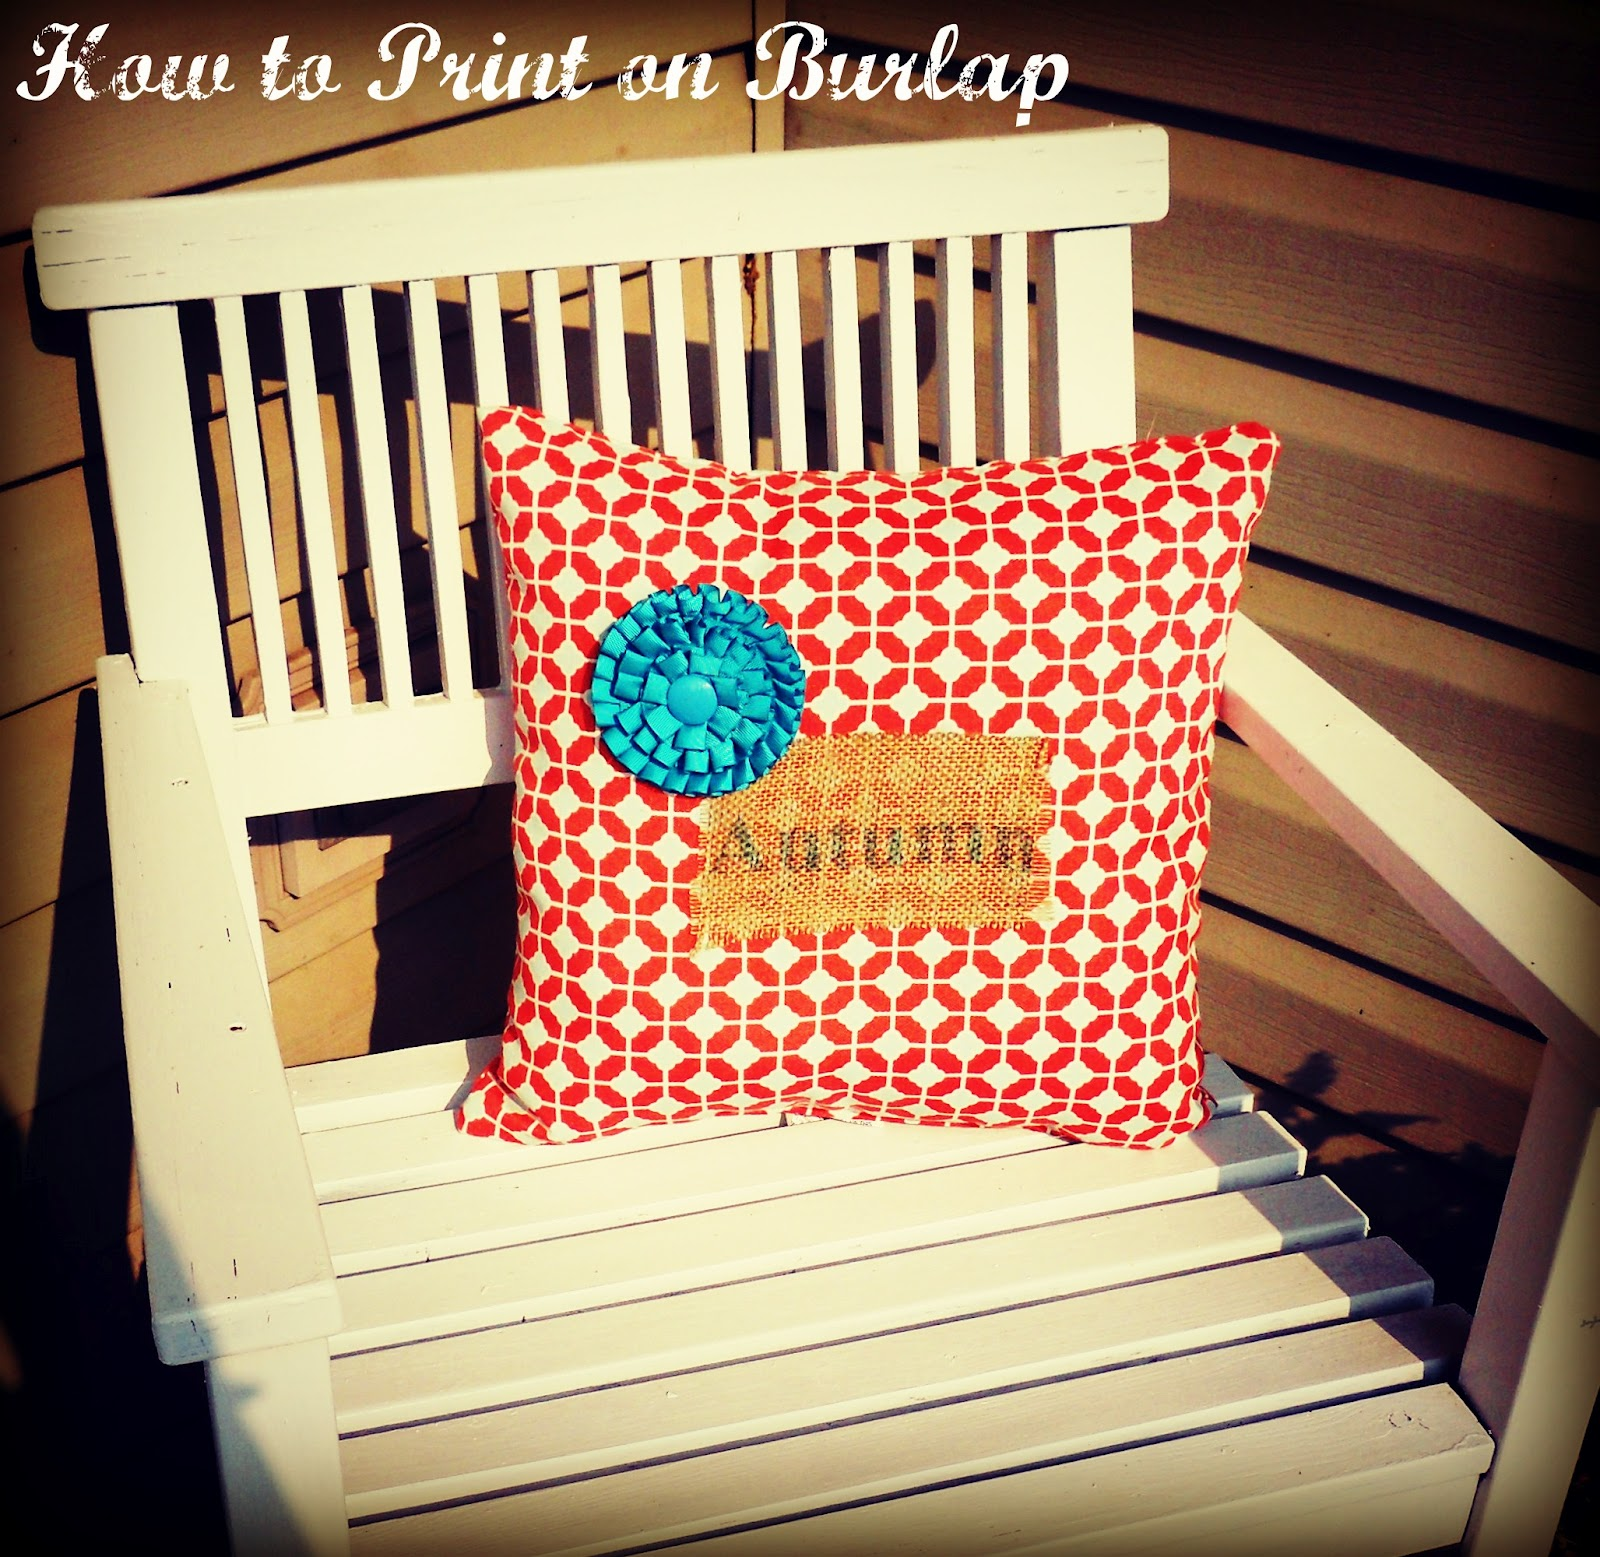 how-to-print-on-burlap